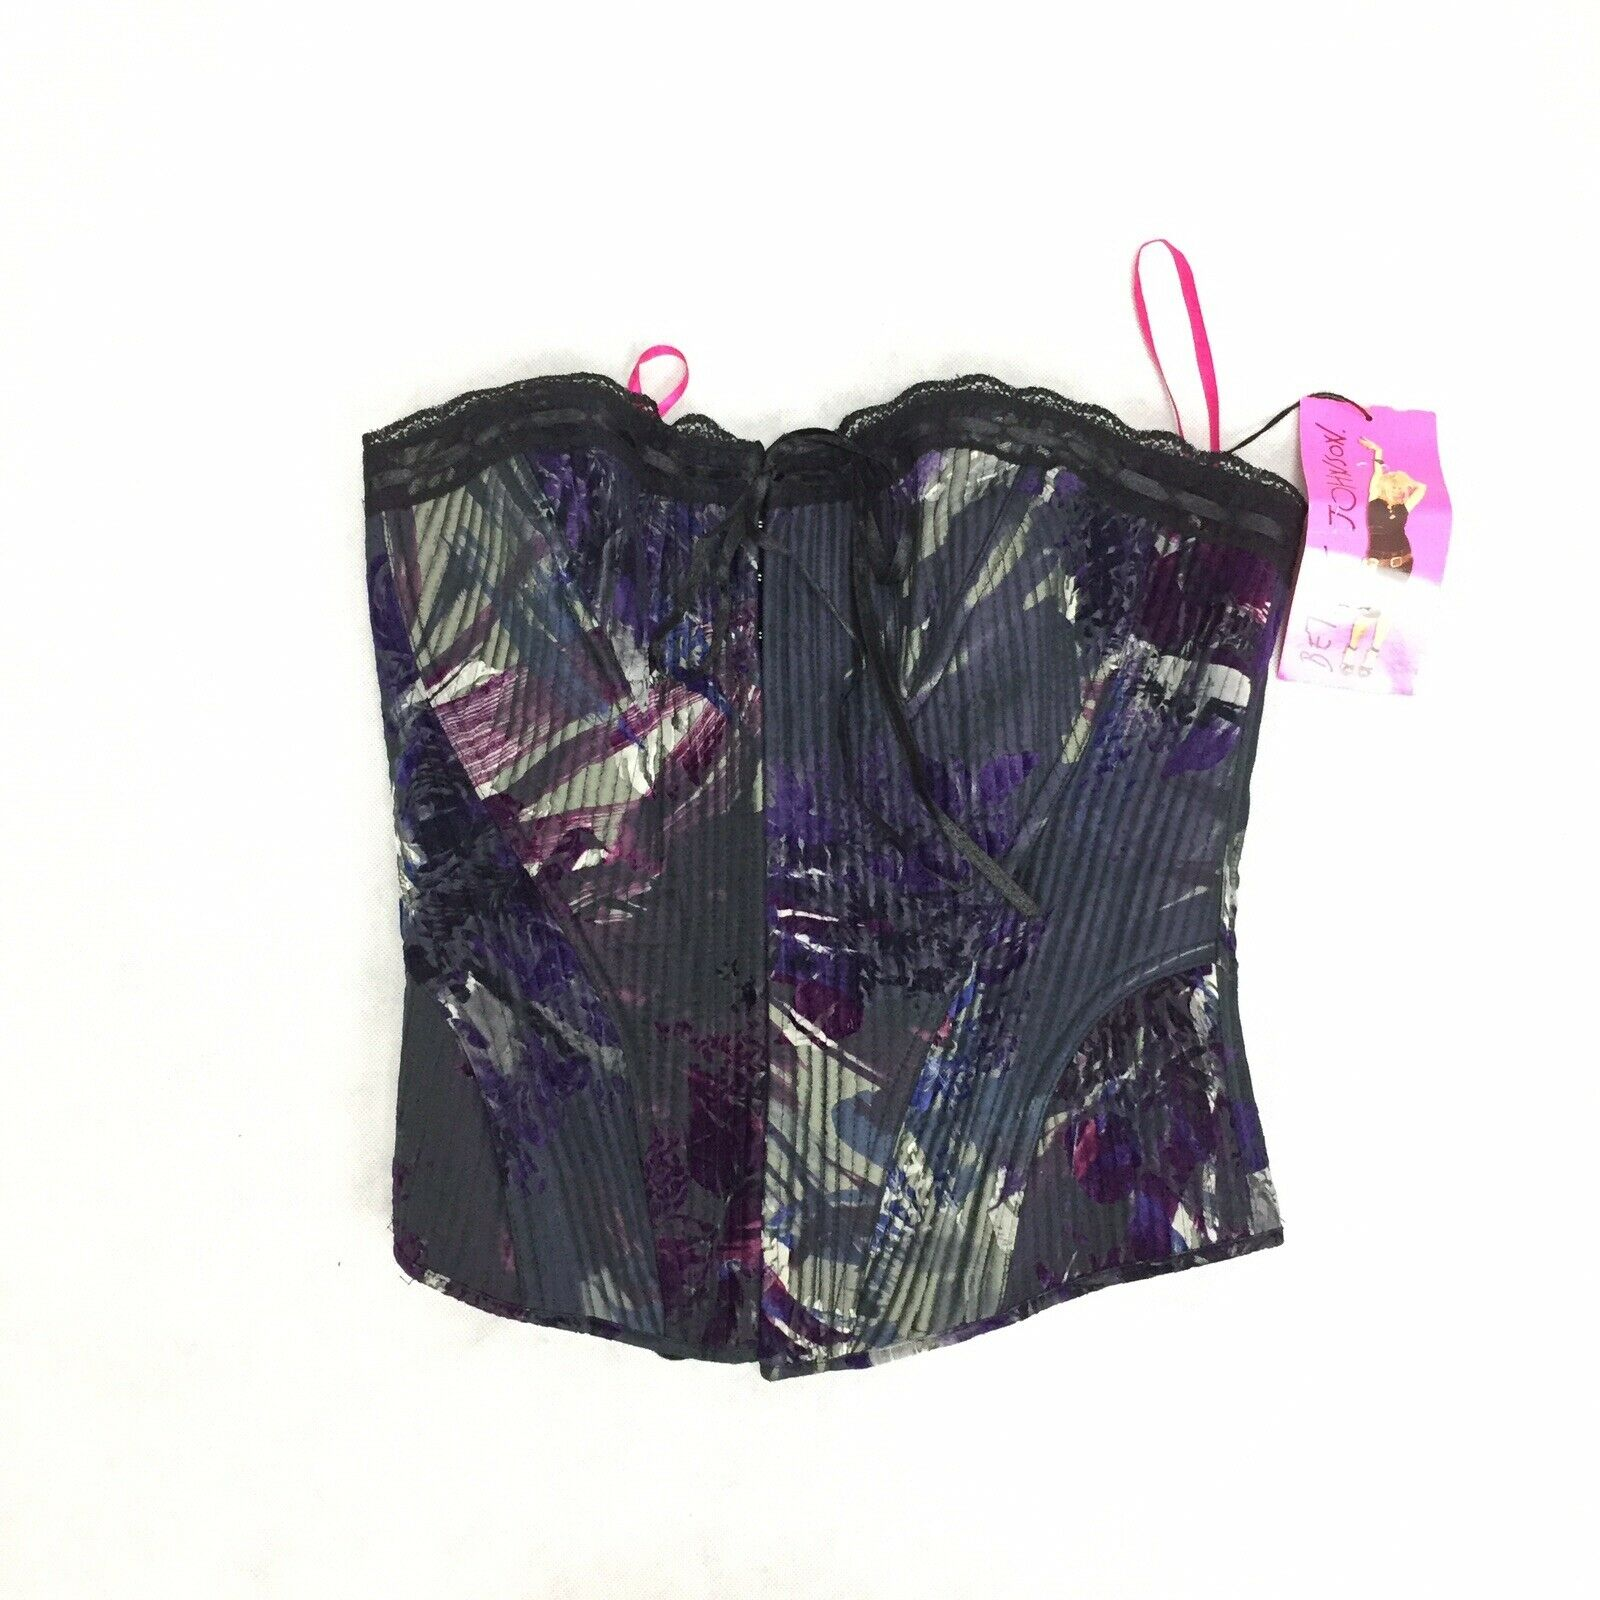 Betsey Johnson Strapless Bustier Corset Top - Size M L